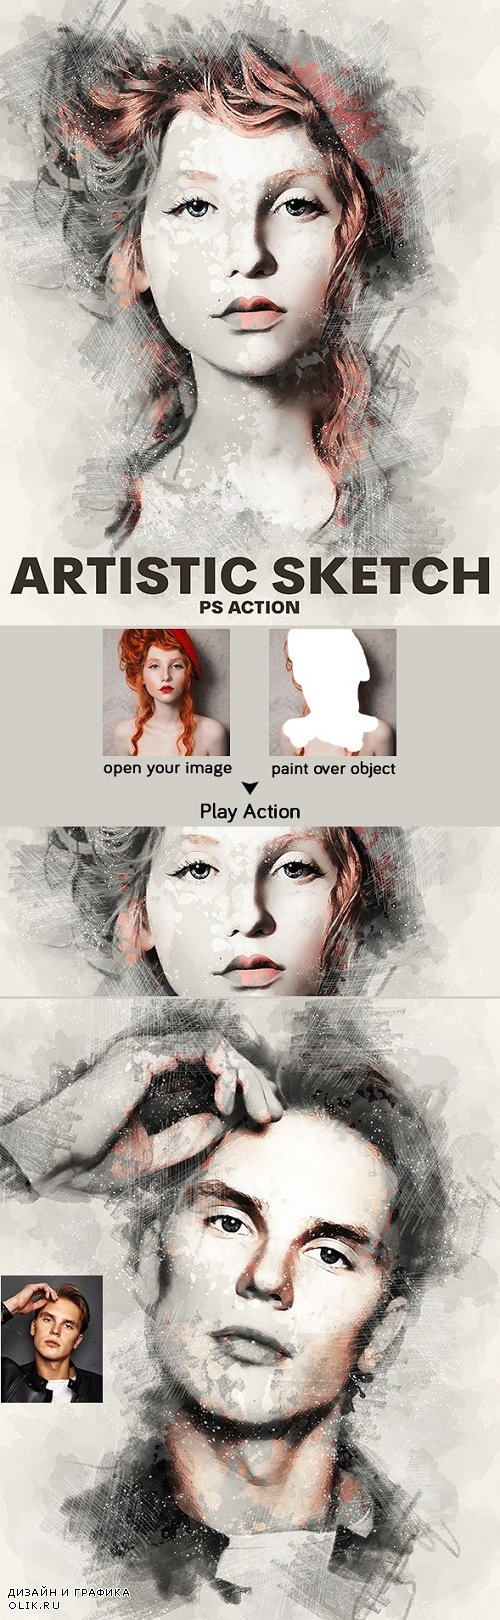 Artistic Sketch PHSP Action - 23361679